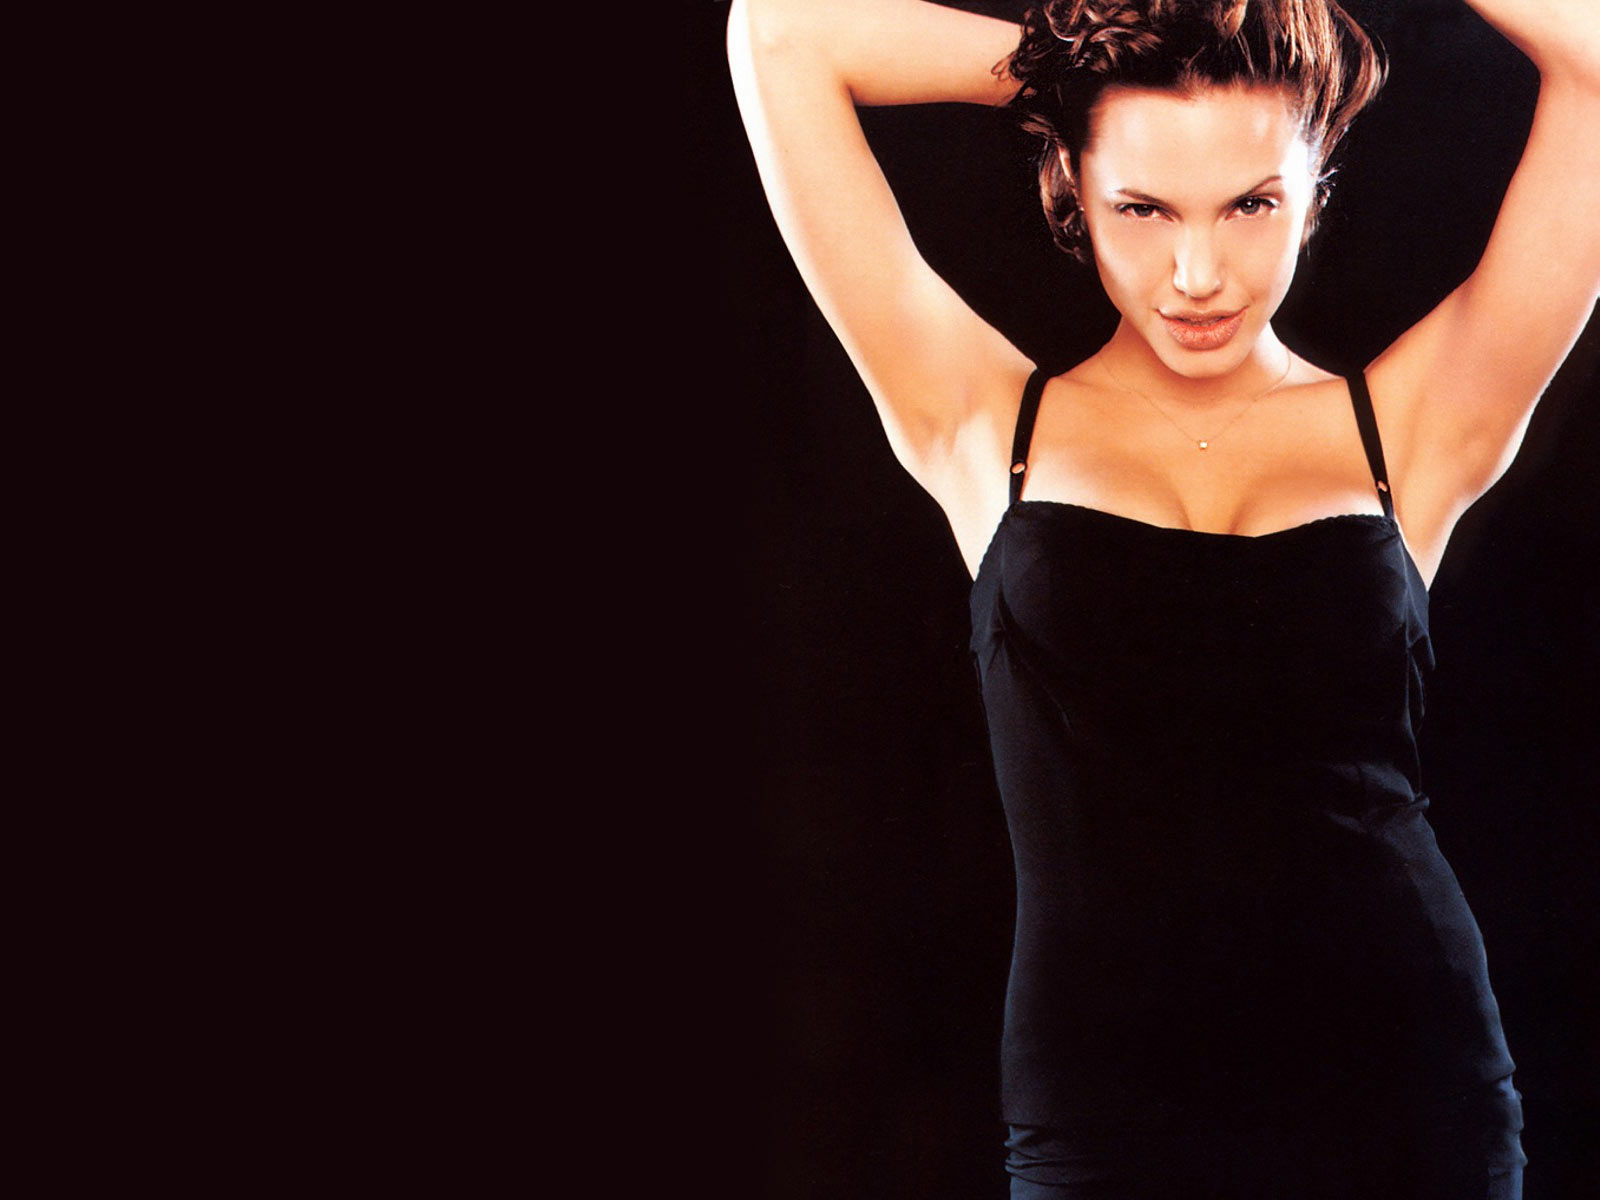 Angelina Jolie Photos Hot angelina jolie hot cleavage images wallpaper, hd celebrities